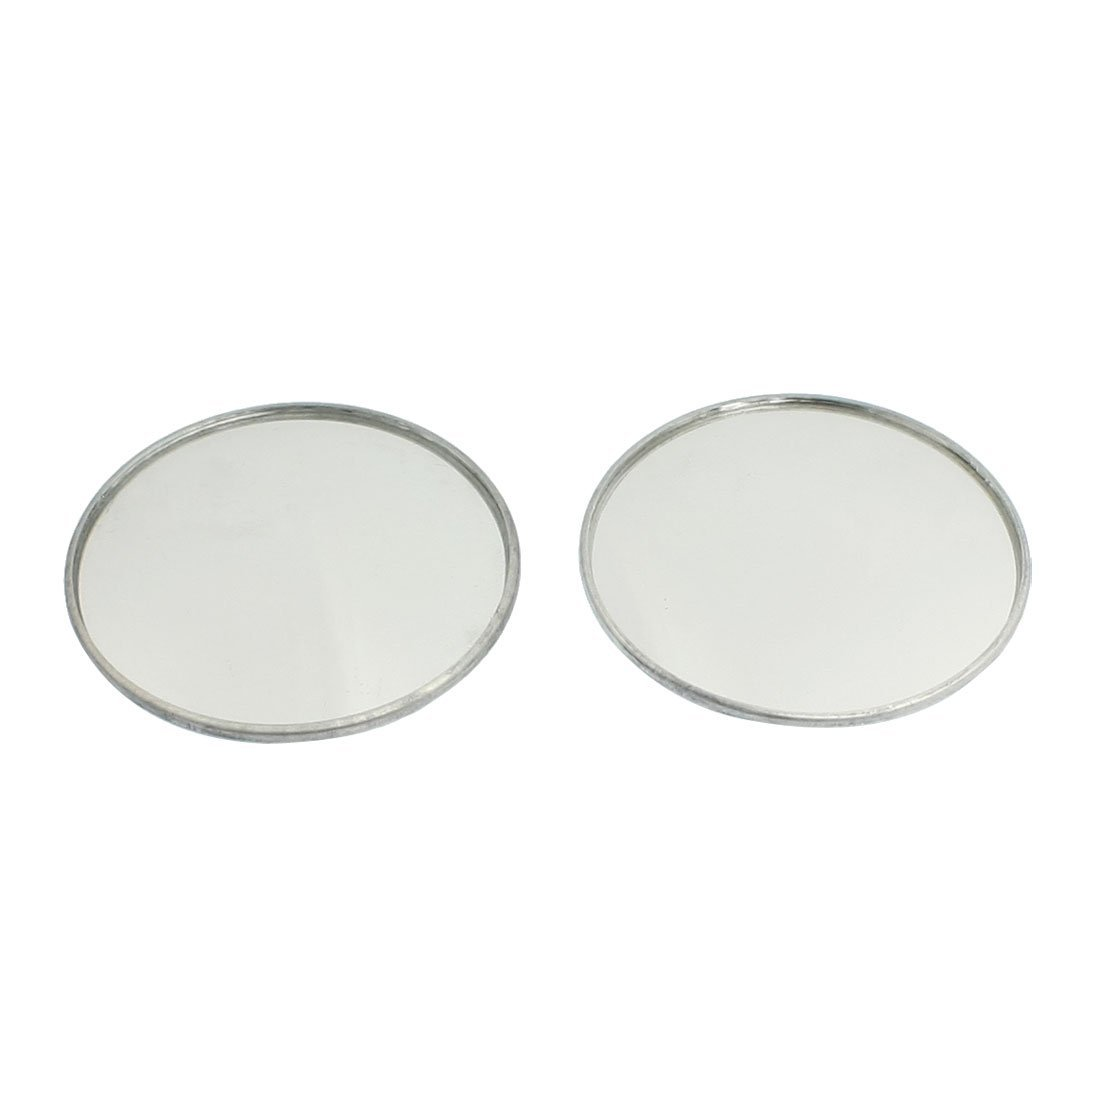 """SODIAL(R) 2 x 1.9"""" Dia Round Metal Casing Convex Car Side Rearview Blind Spot Mirror"""